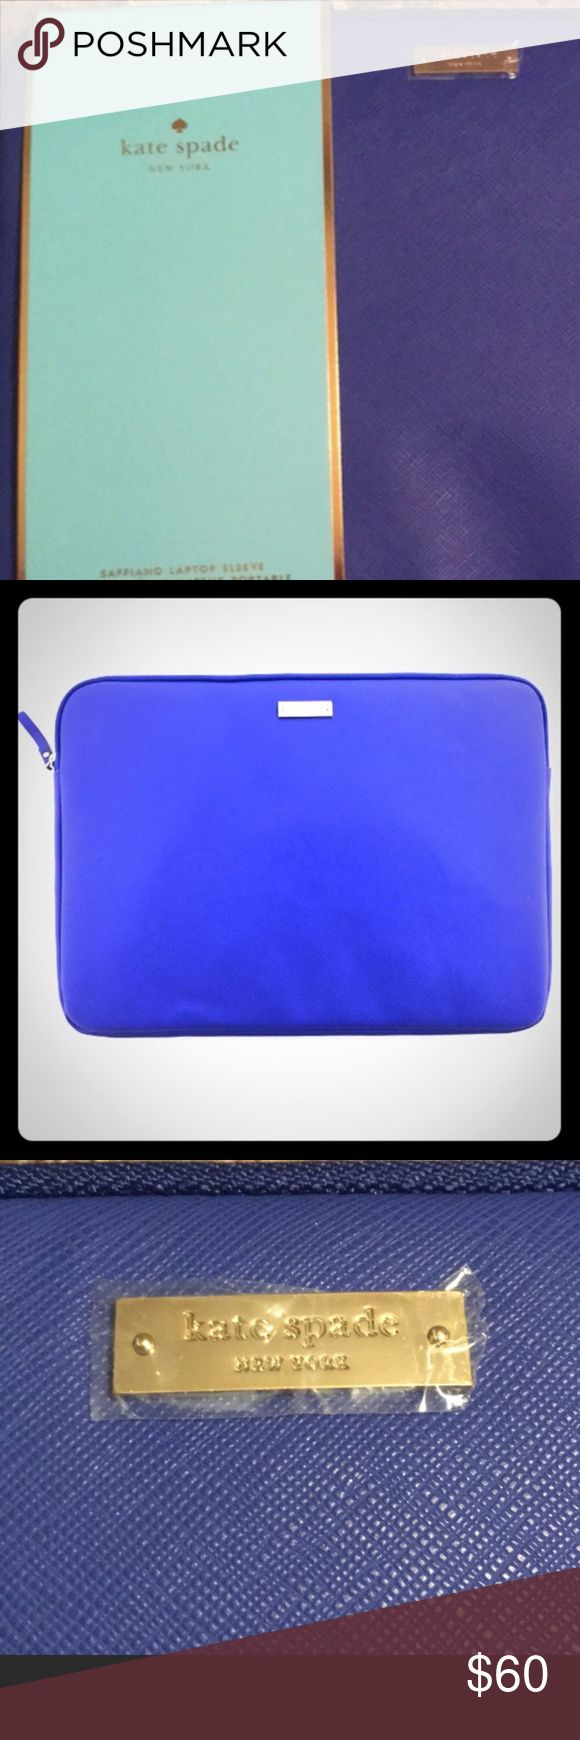 ⏰SALE⏰Kate Spade New York Laptop Sleeve Royal Blue Kate Spade New York Laptop Sleeve Blue Holds 13 inch MacBook. Authentic Kate Spade photos shows authenticity. Perfect for a man or a woman kate spade Bags Laptop Bags